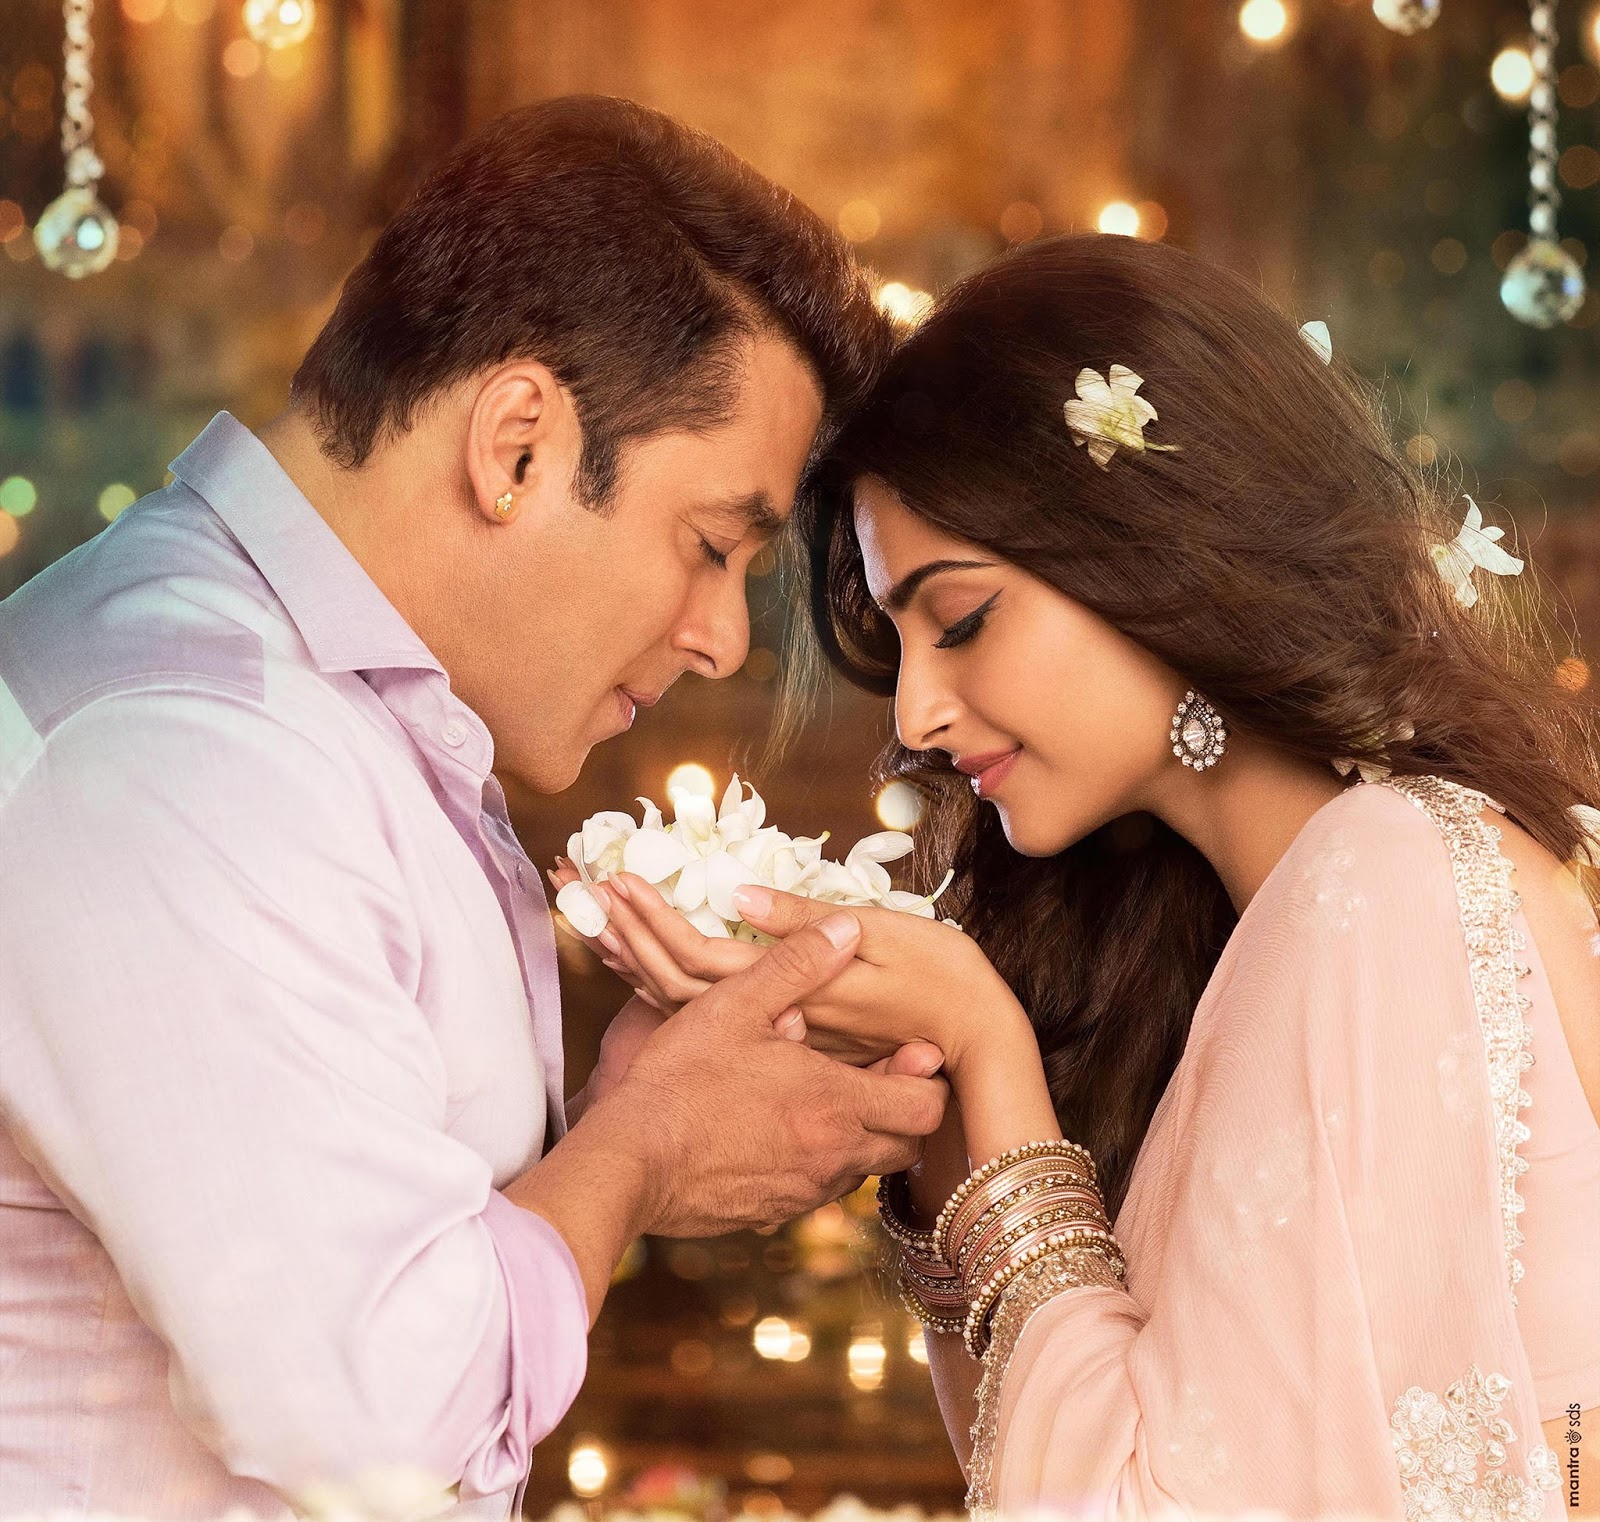 Salman Khan And Sonam Kapoor Hd Wallpaper Beautiful Desktop Hd